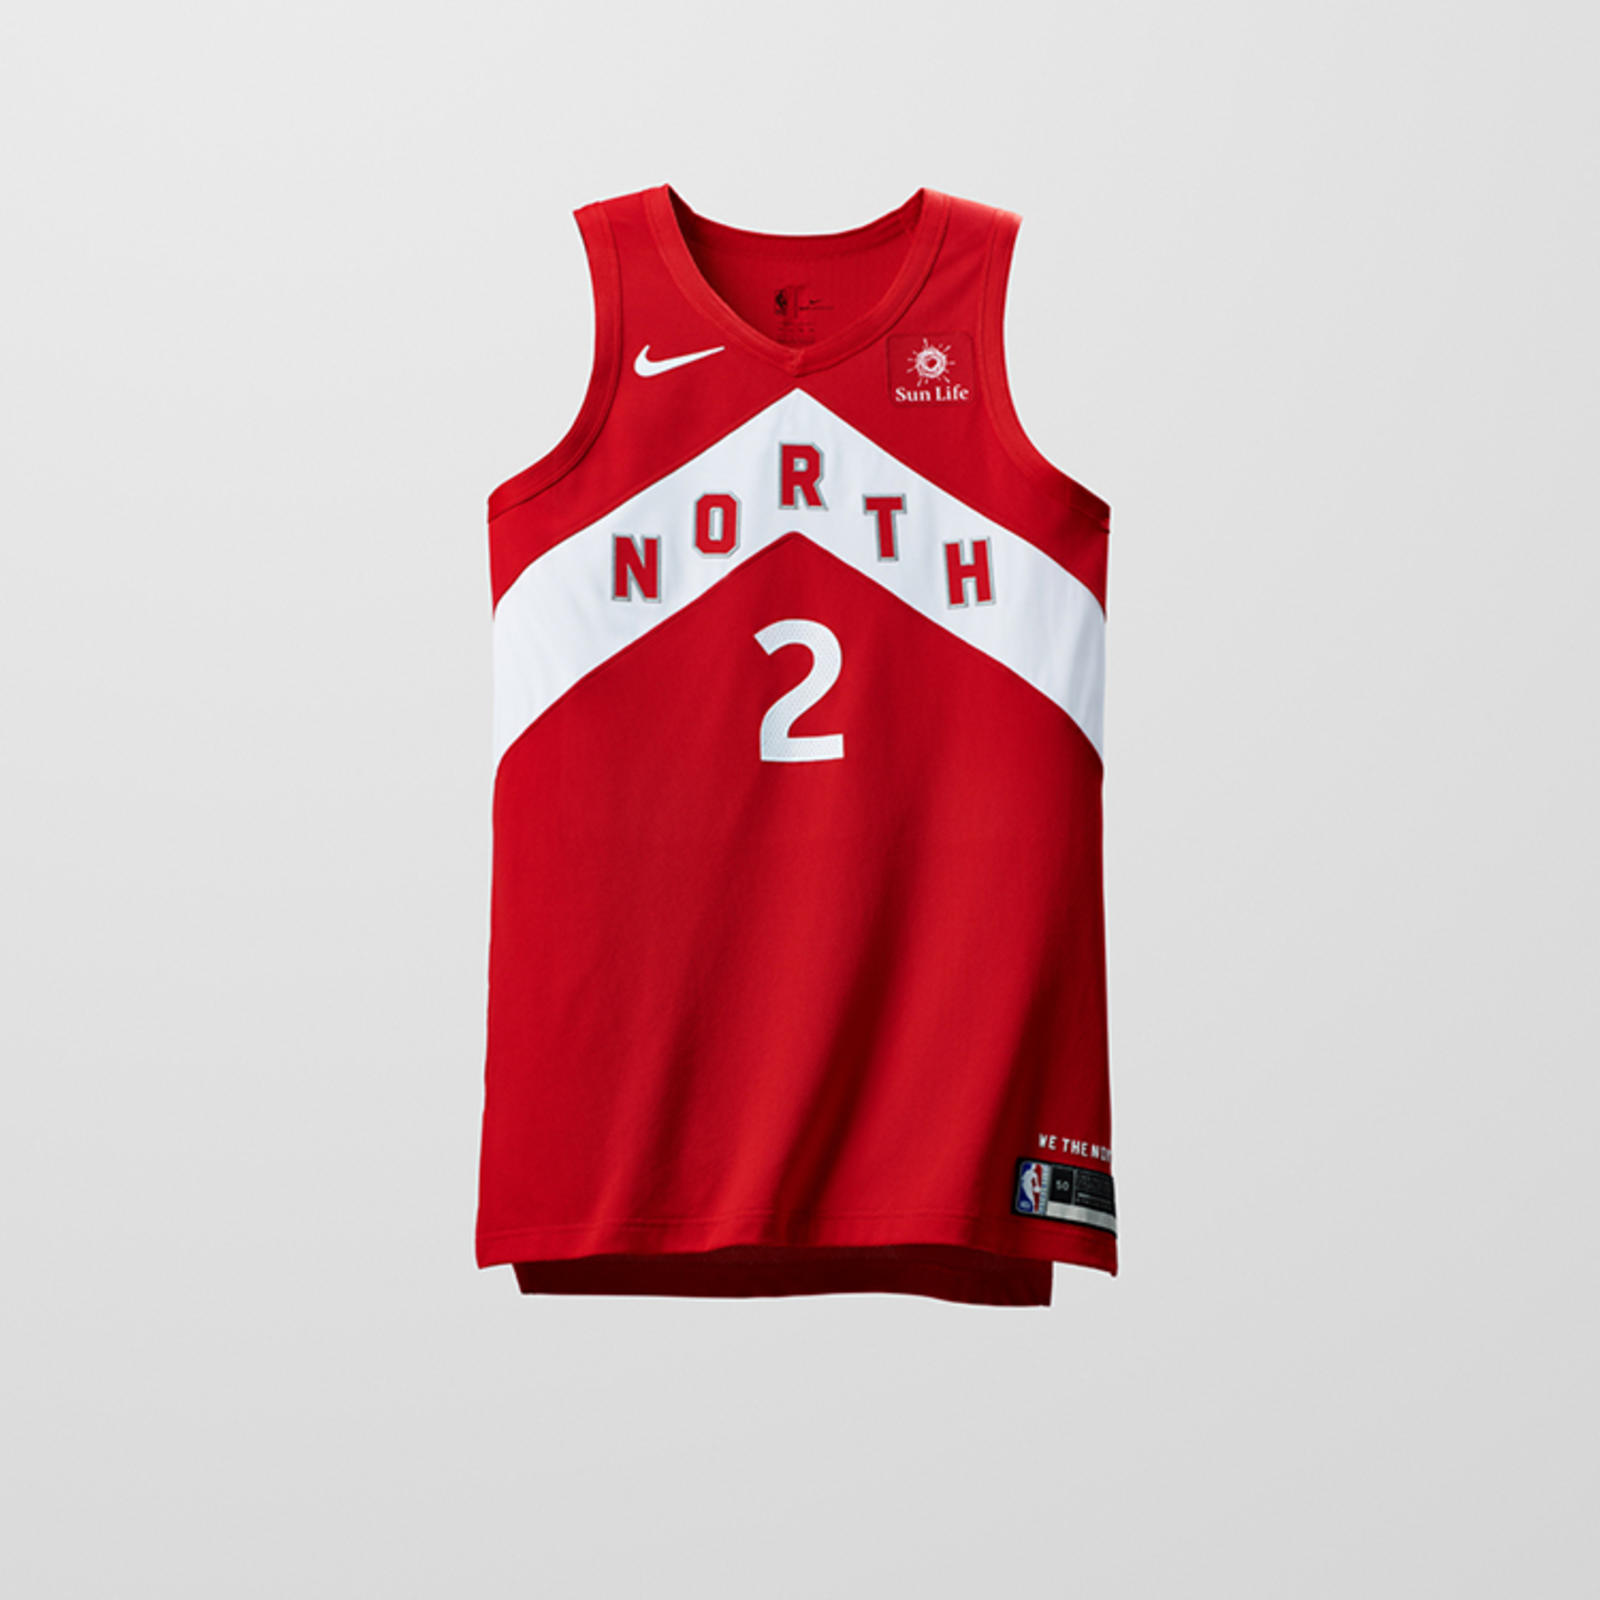 bab519982 The first chance the Raptors will have to sport this look is on Dec. 26  against the Miami Heat